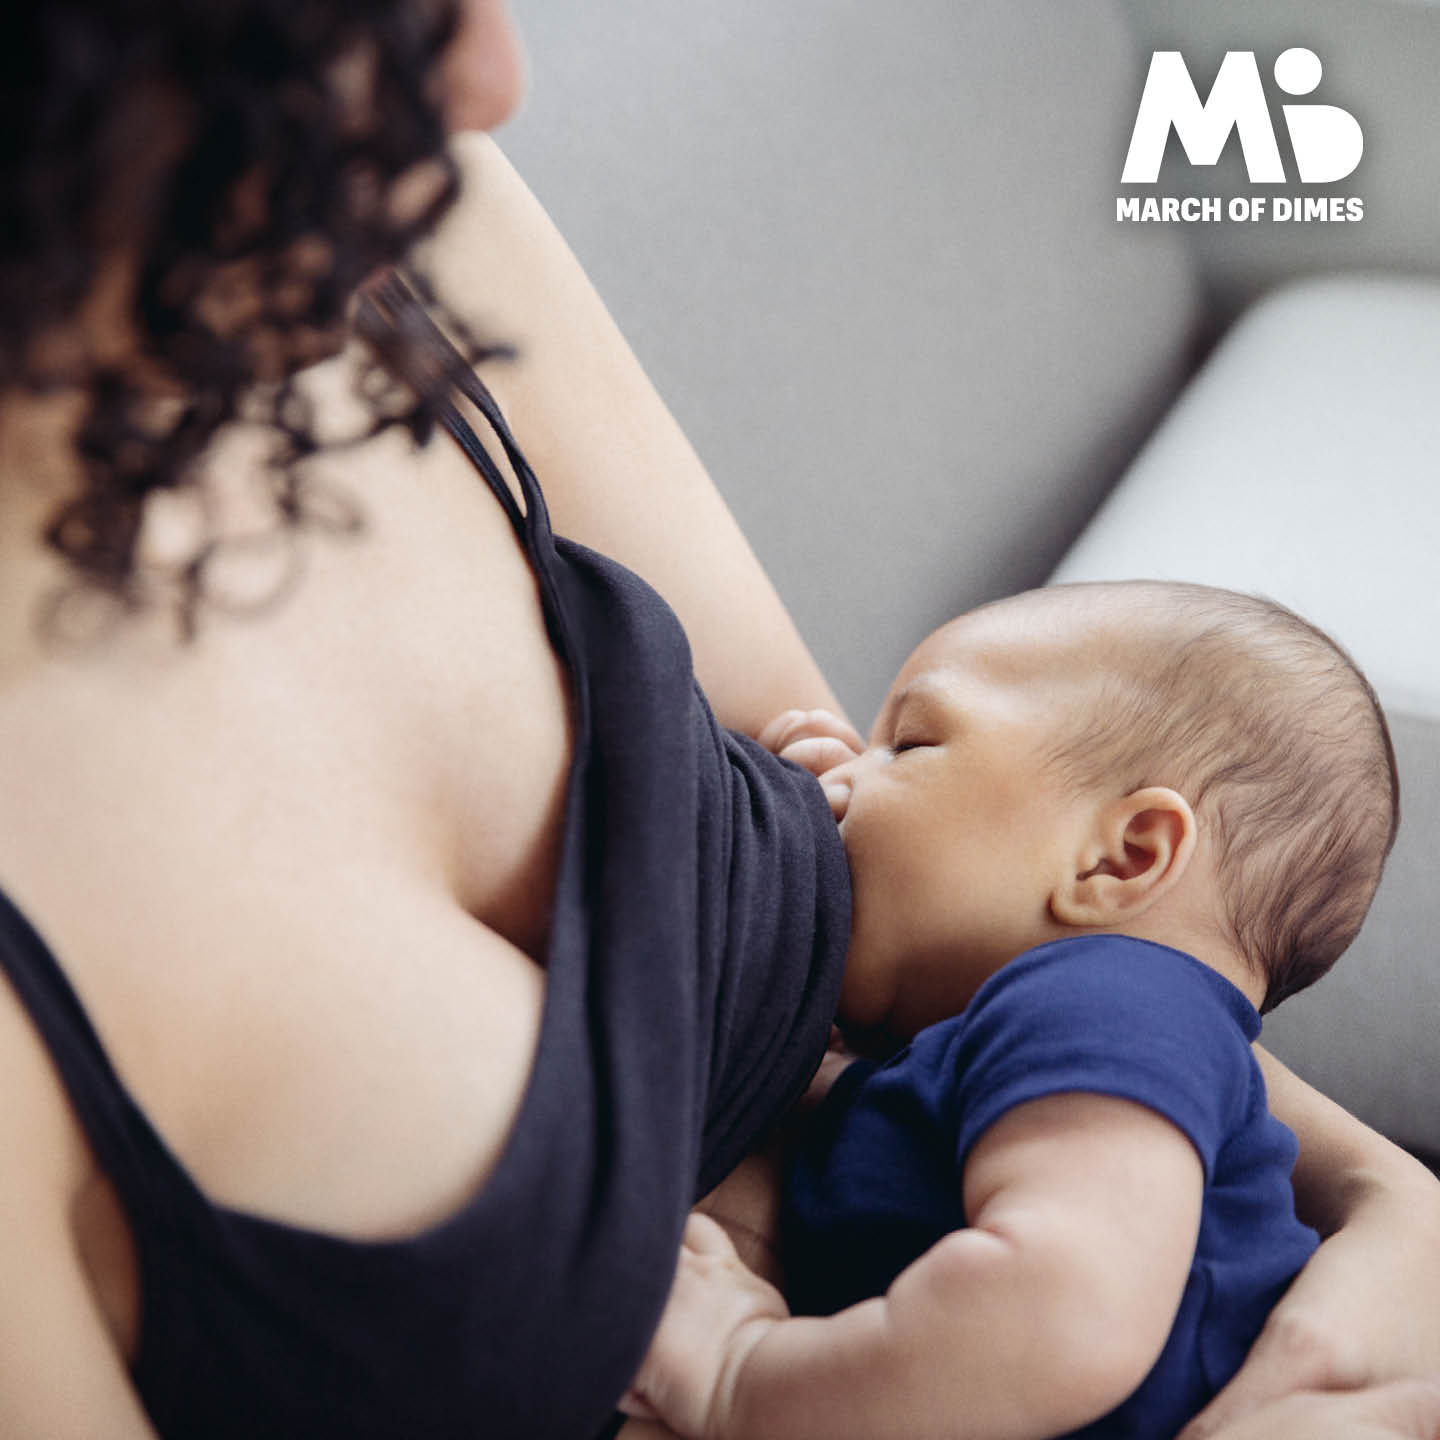 Breastfeeding is good for mom and baby